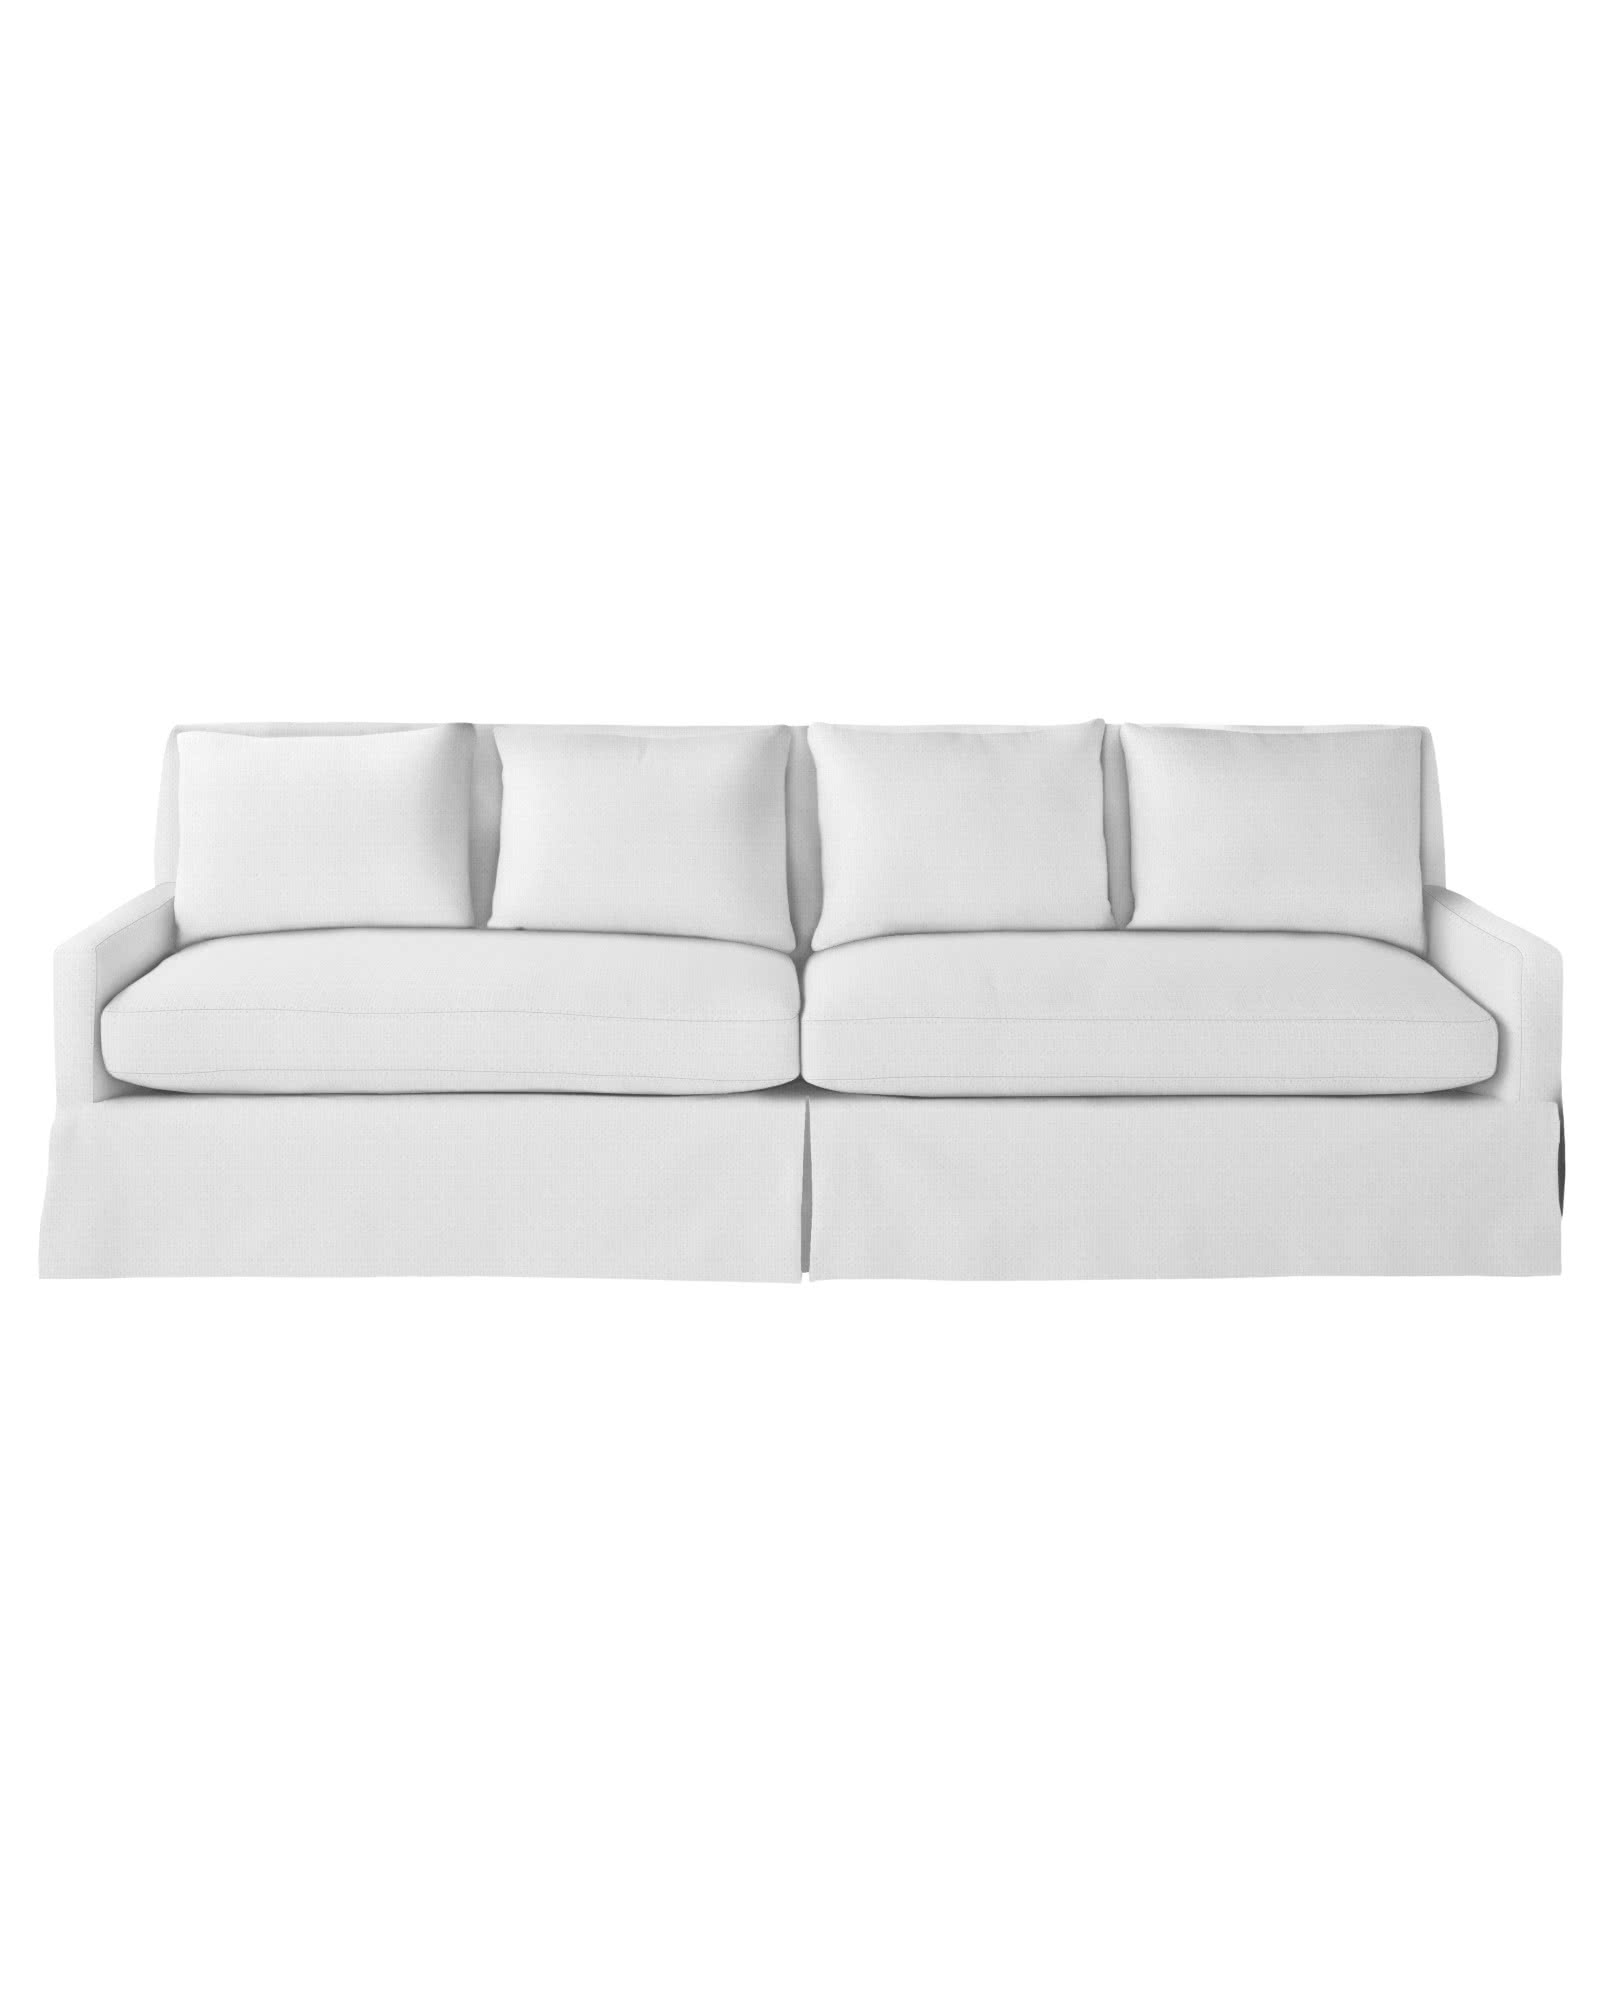 Jamieson Sofa - Skirted,